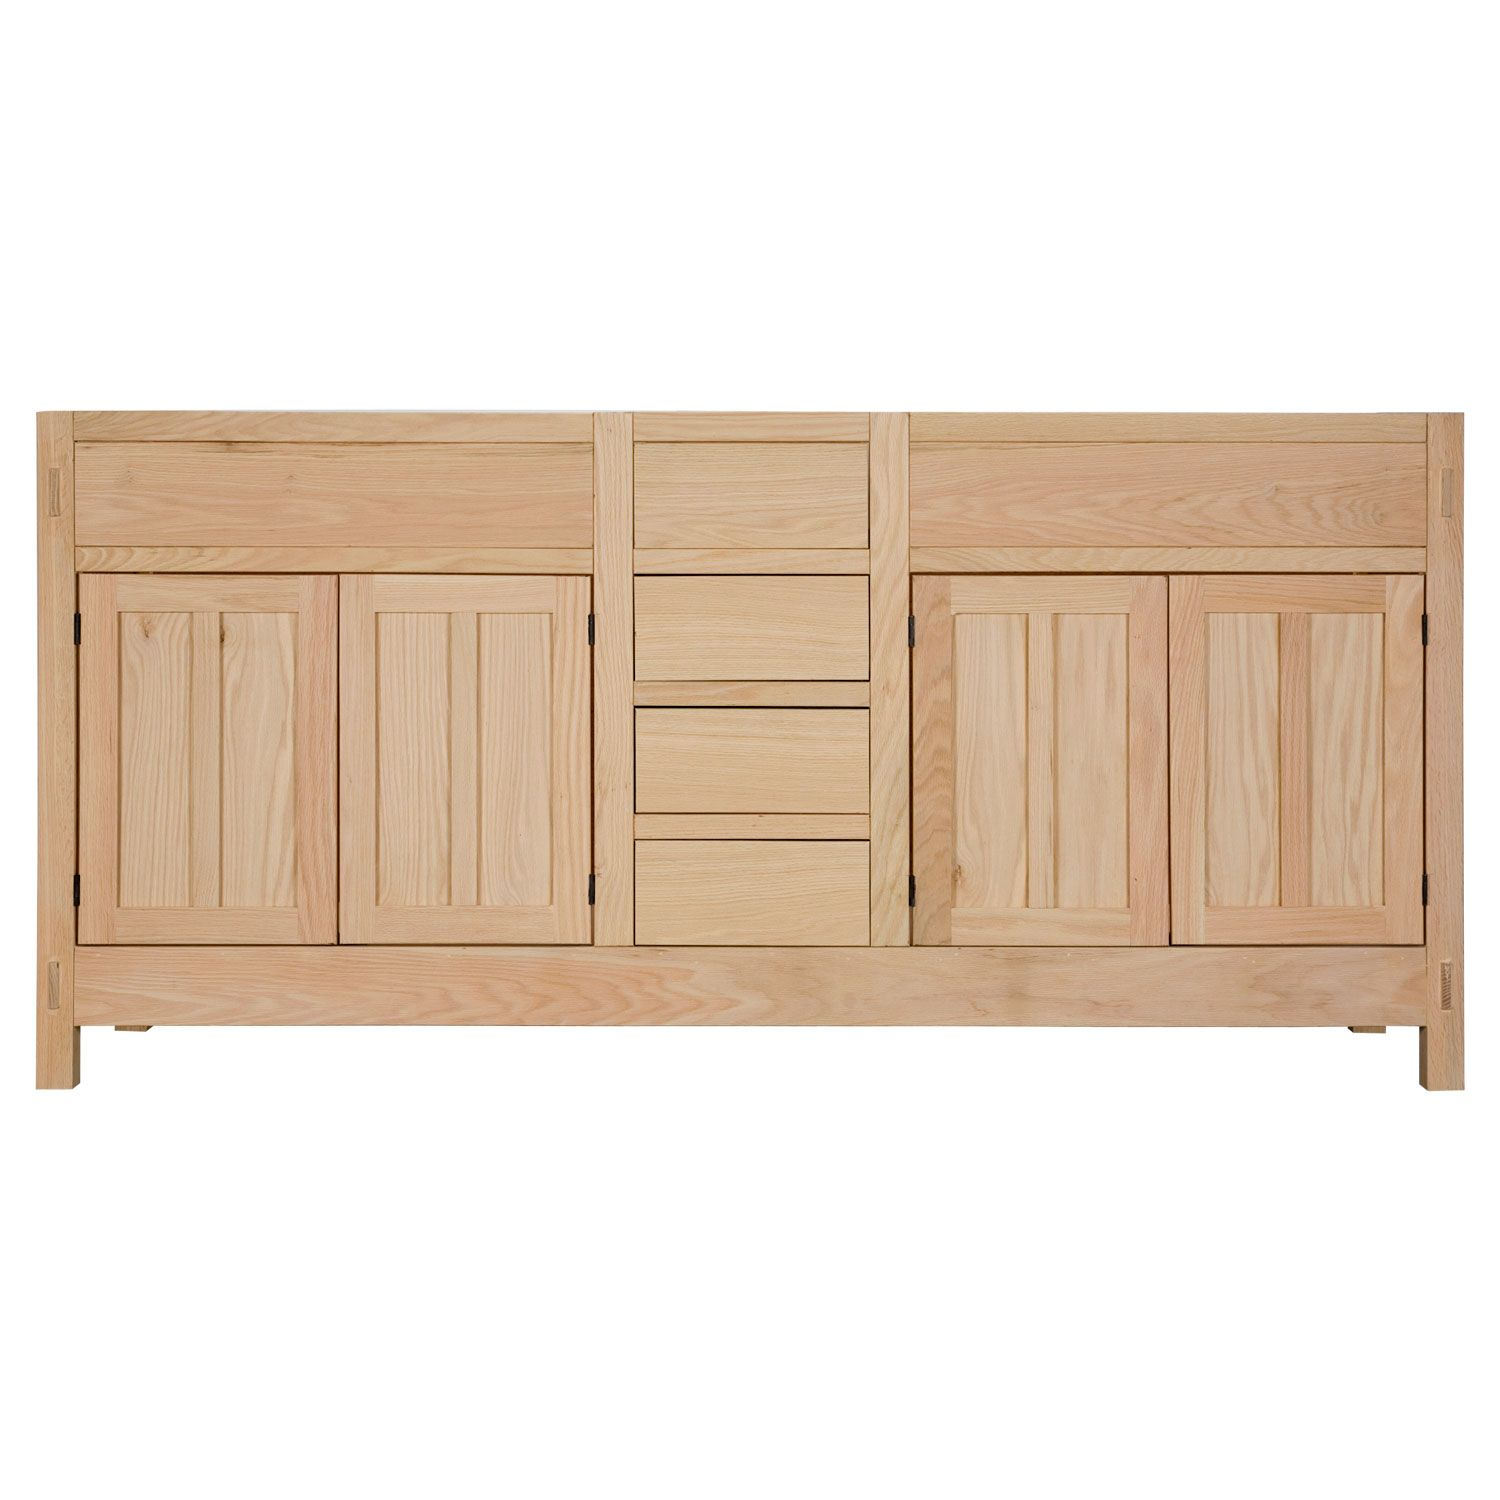 "Bathroom Vanities Tampa 72"" unfinished mission hardwood vanity 